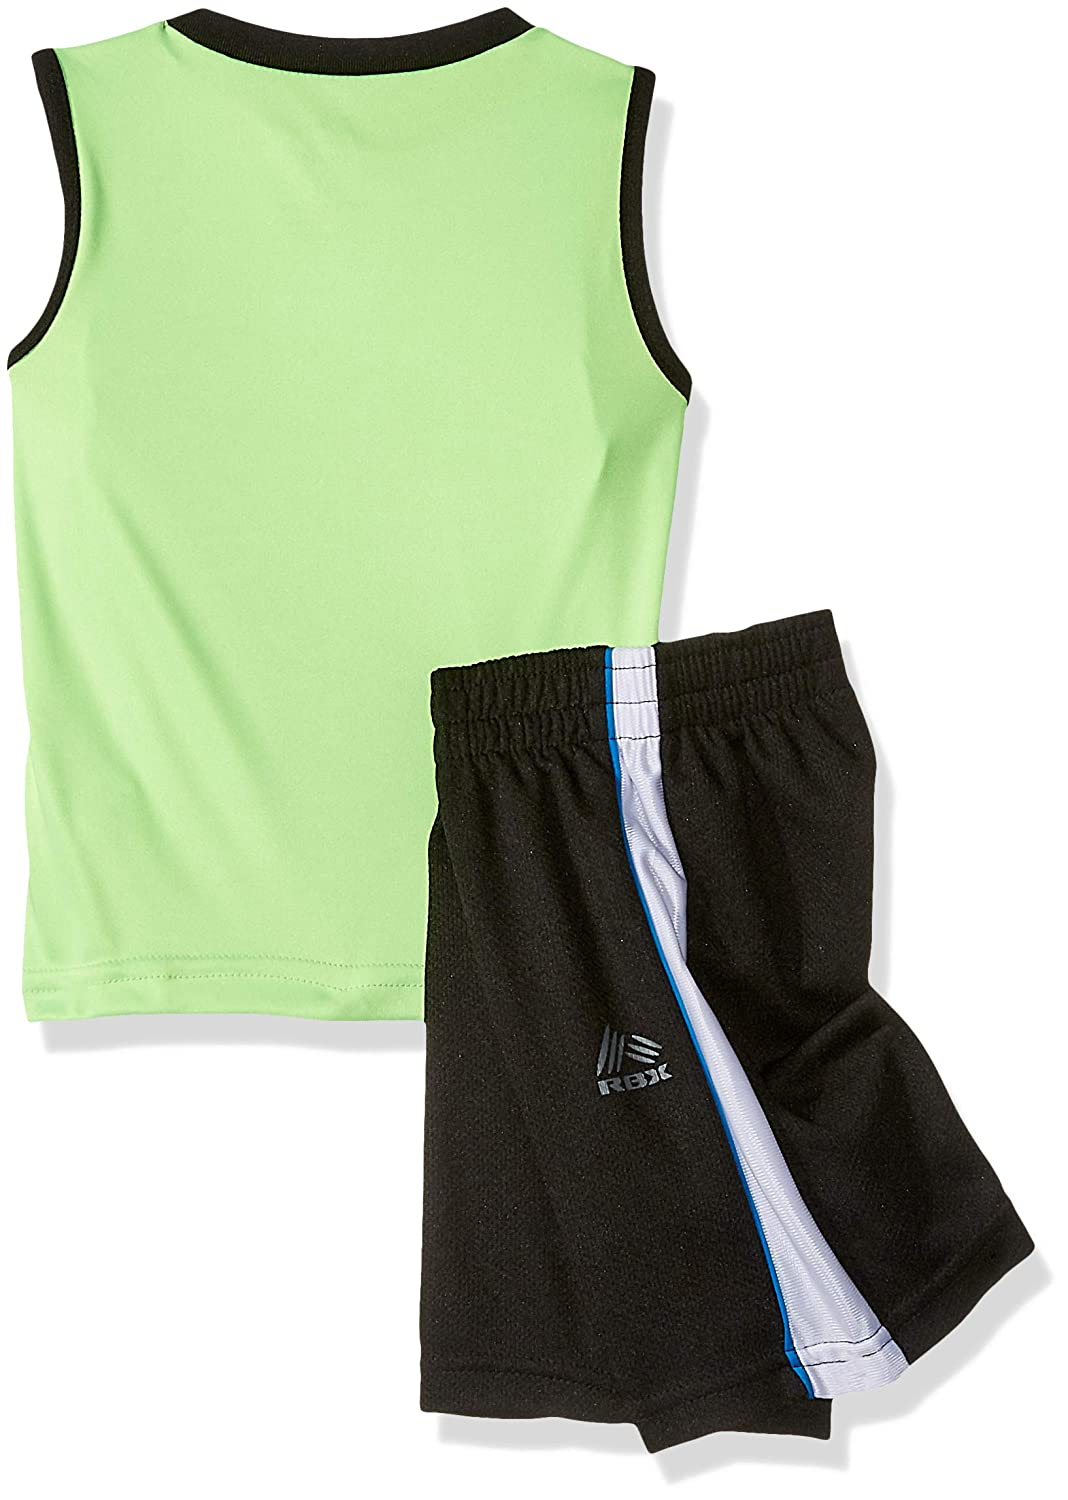 RBX Boys Toddler 3 Piece Performance Top Tank and Short Set